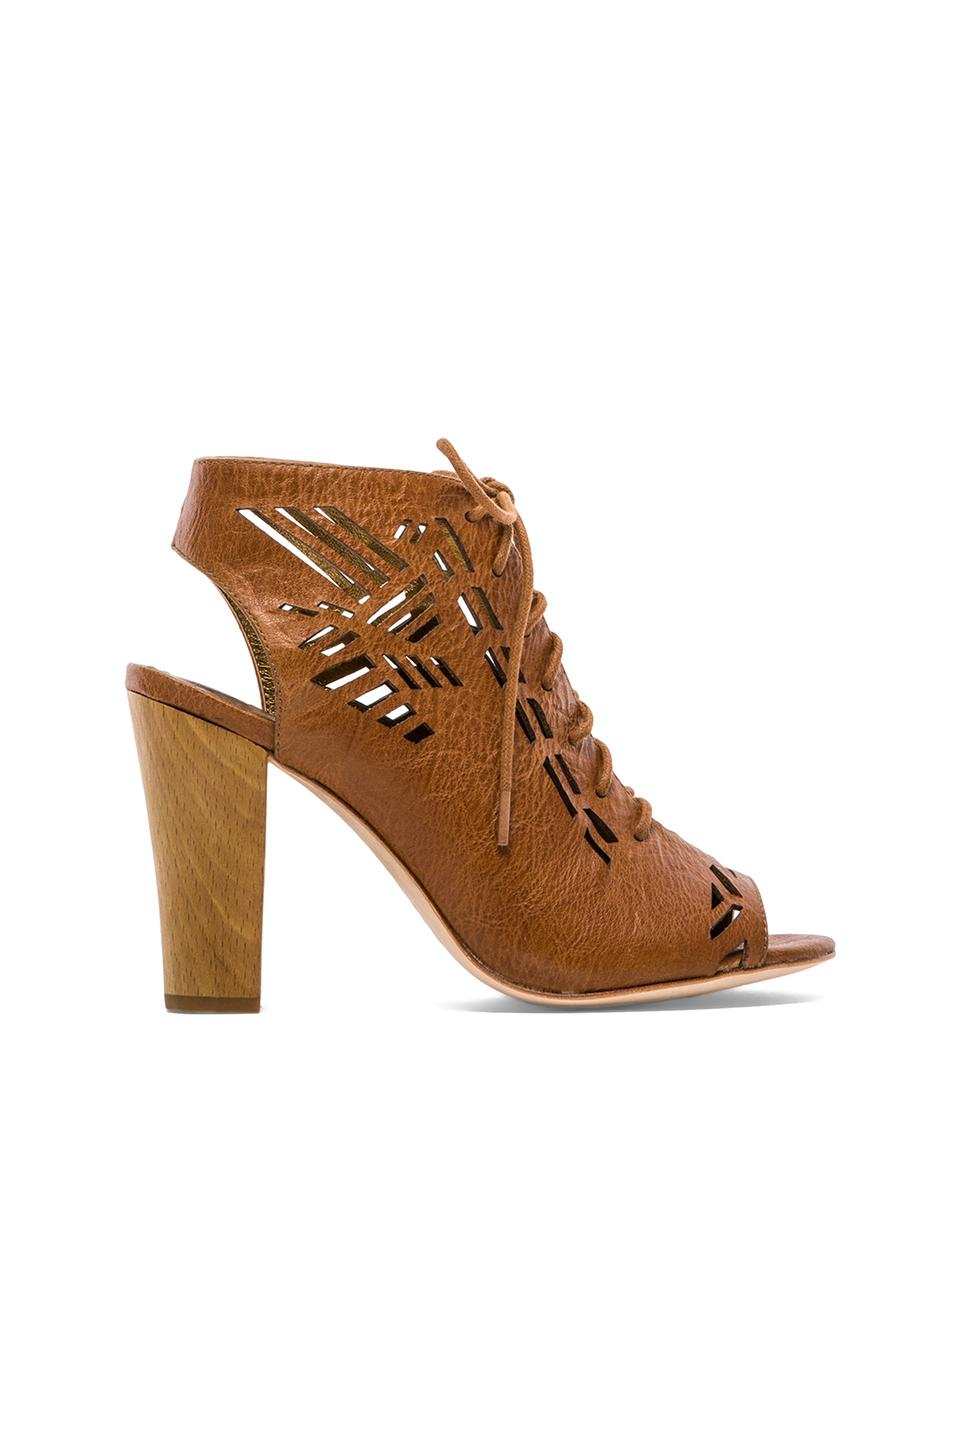 Twelfth Street By Cynthia Vincent Sivan Laser Cut Lace Up Suede Sandal in Cognac